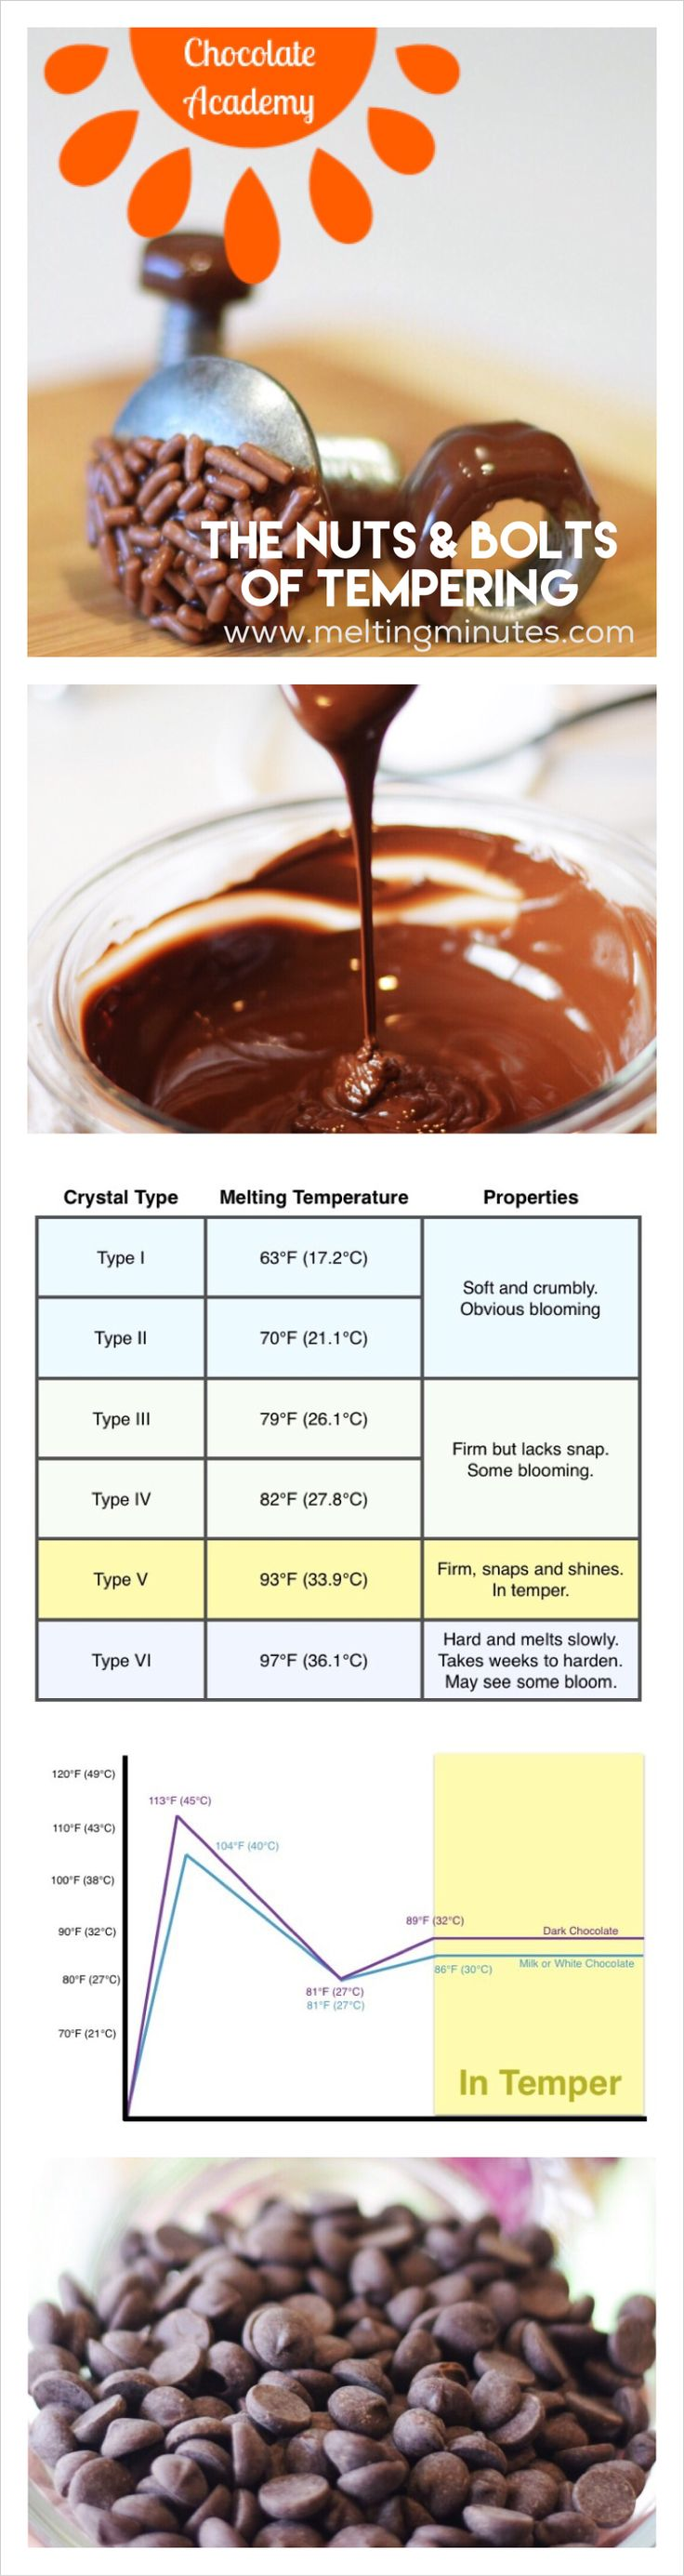 Learn how tempering chocolate works at Melting Minutes.